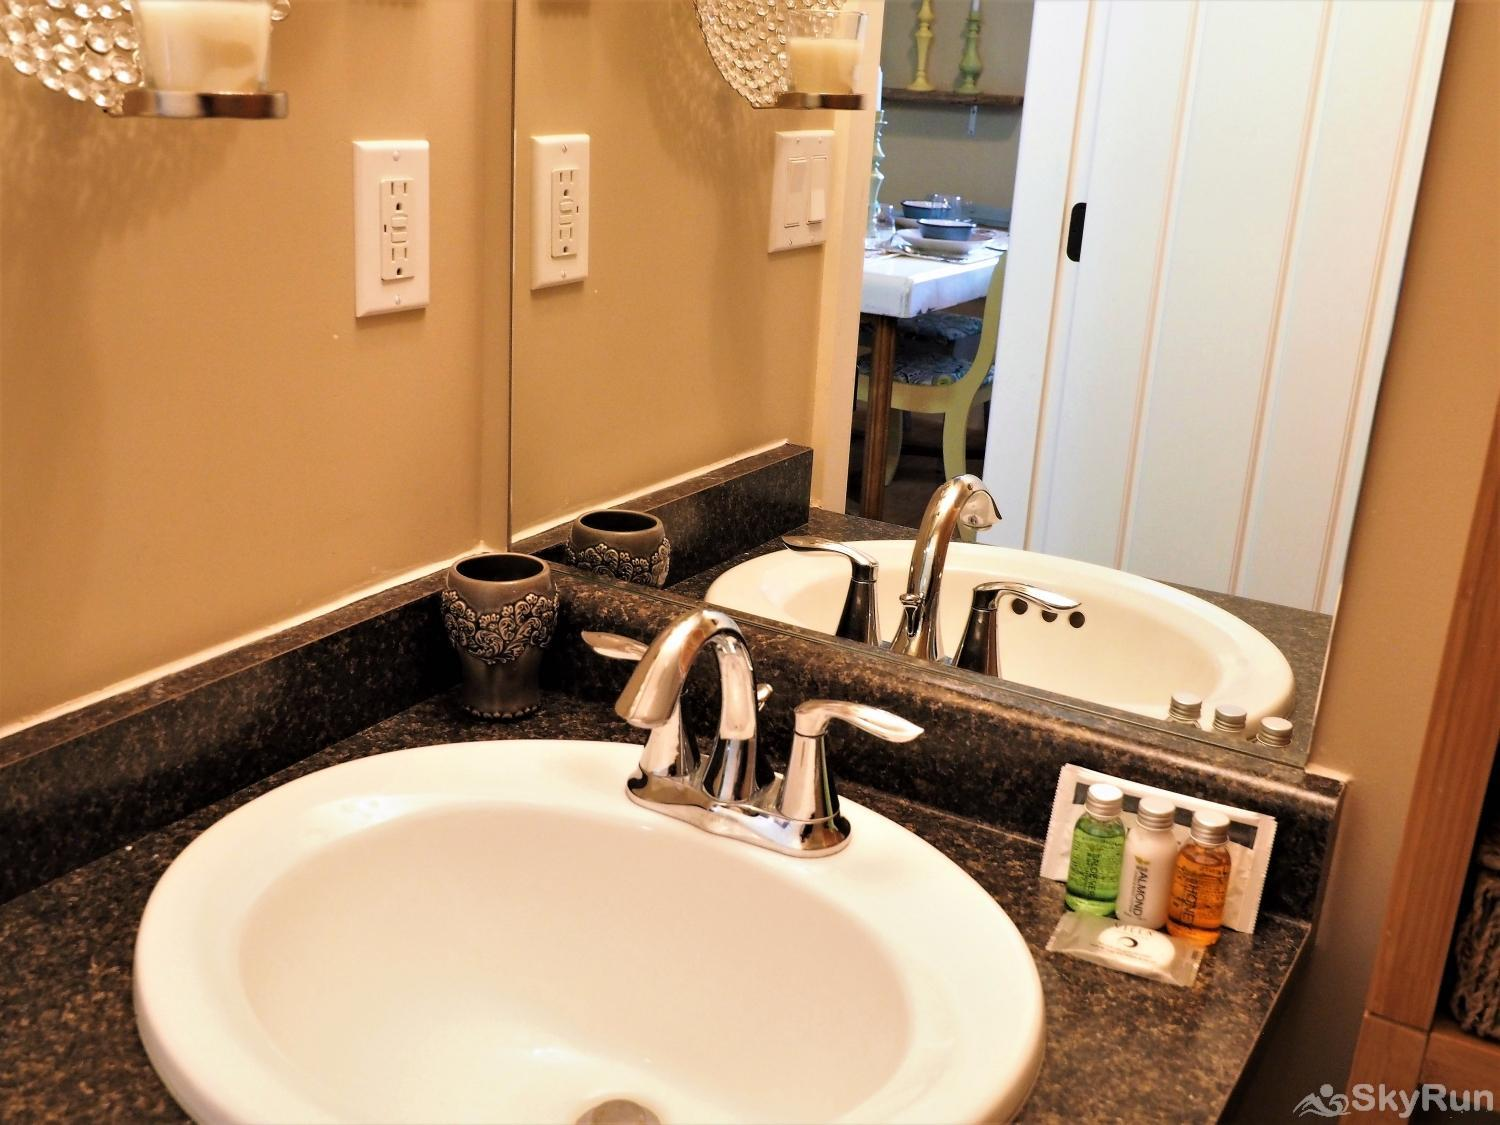 Old Summerland 1 bedroom suite roomy bathroom with lots of space to store your things